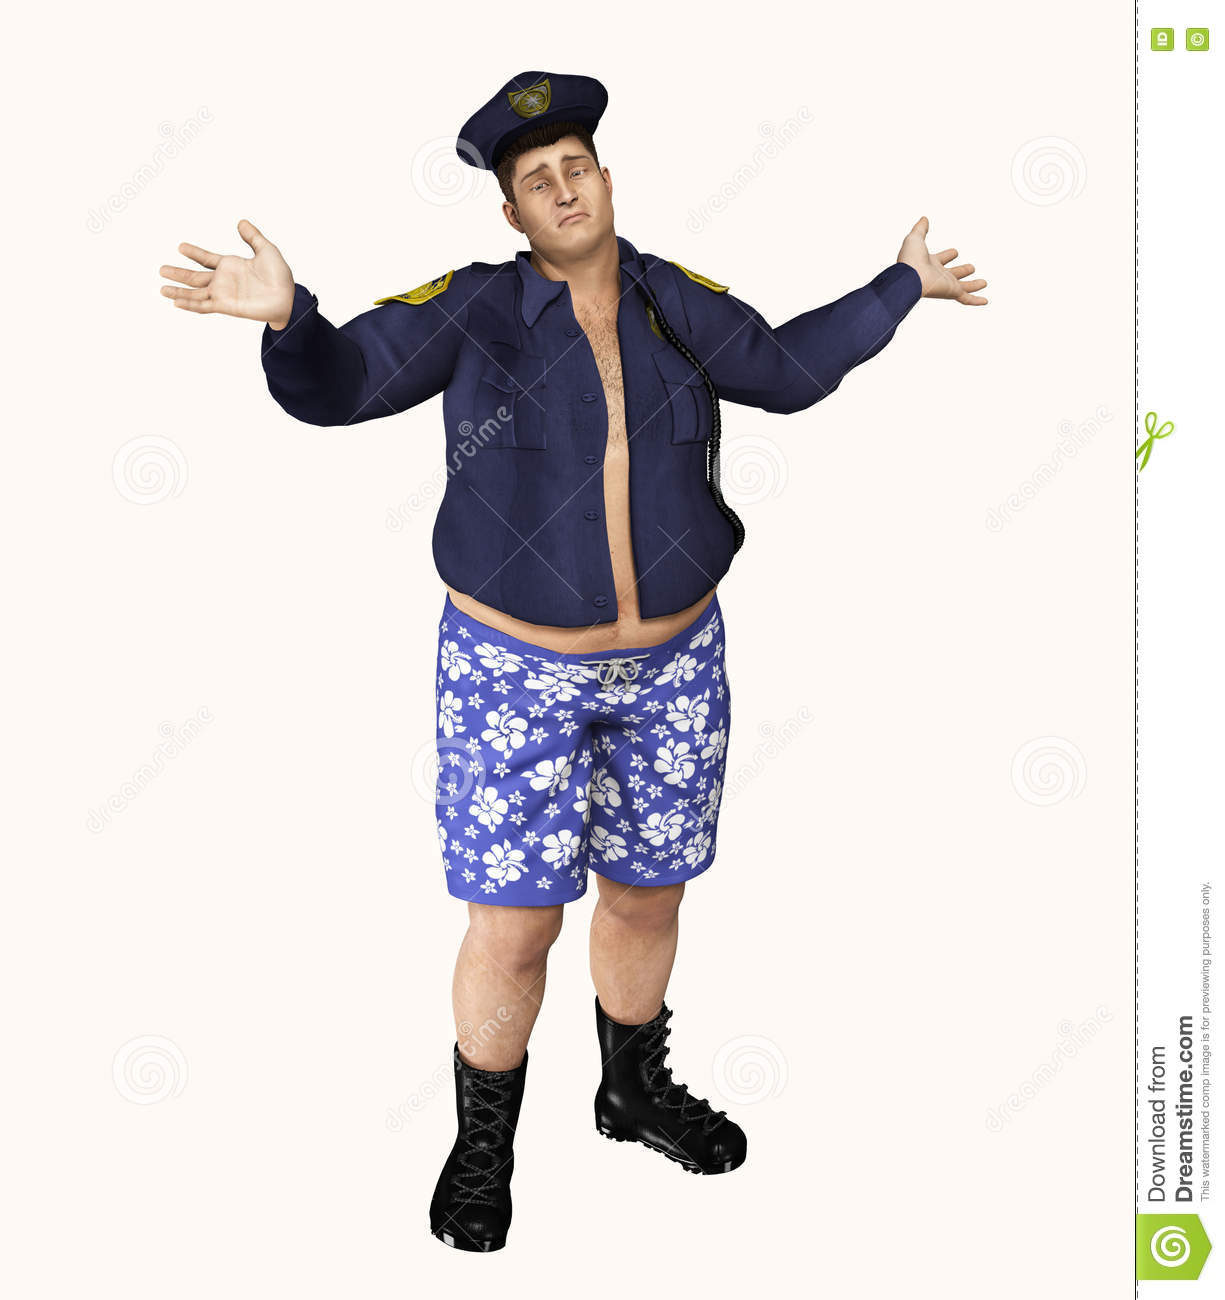 Police Officer Caught With Pants Off